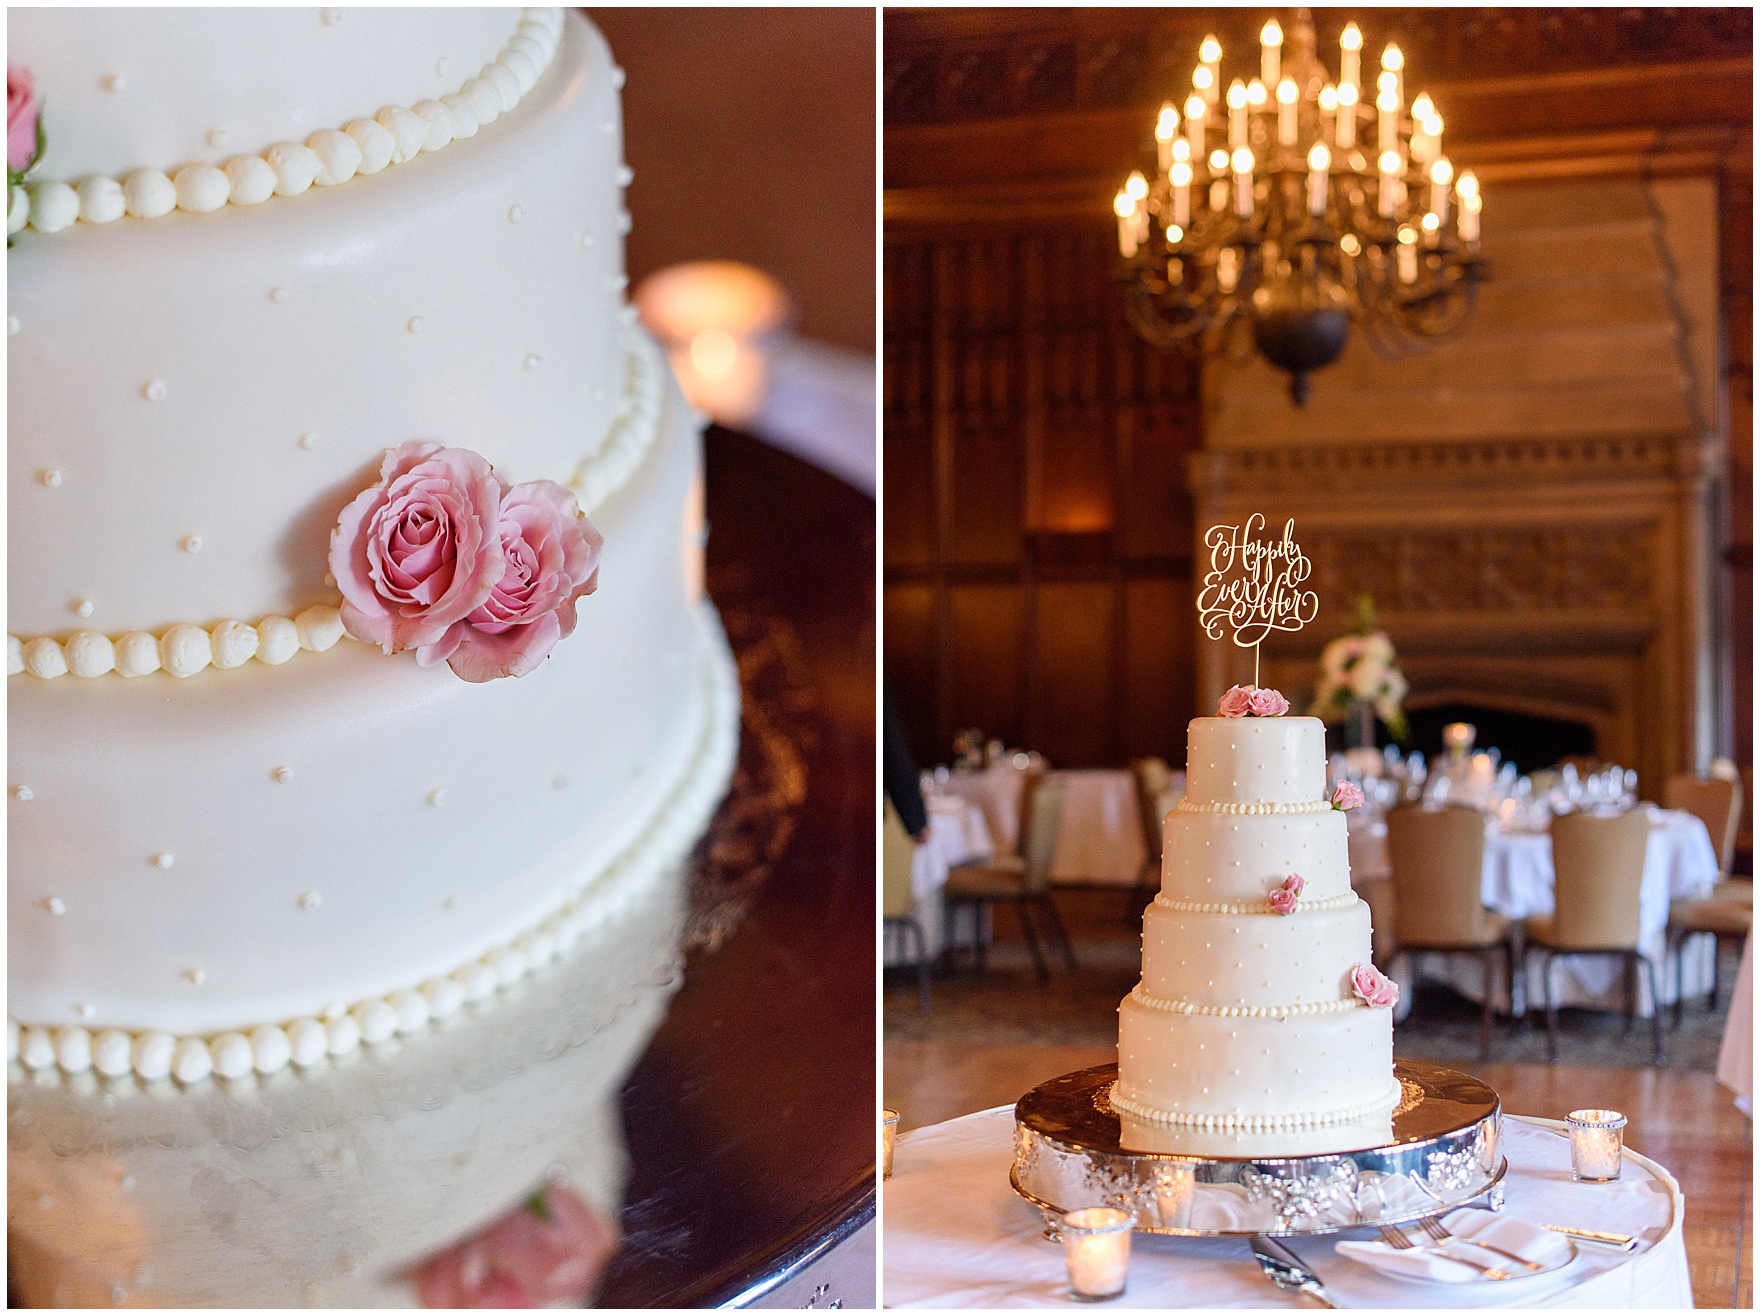 Details of a wedding cake and the Michigan Room set up for a dinner reception for a University Club of Chicago wedding.